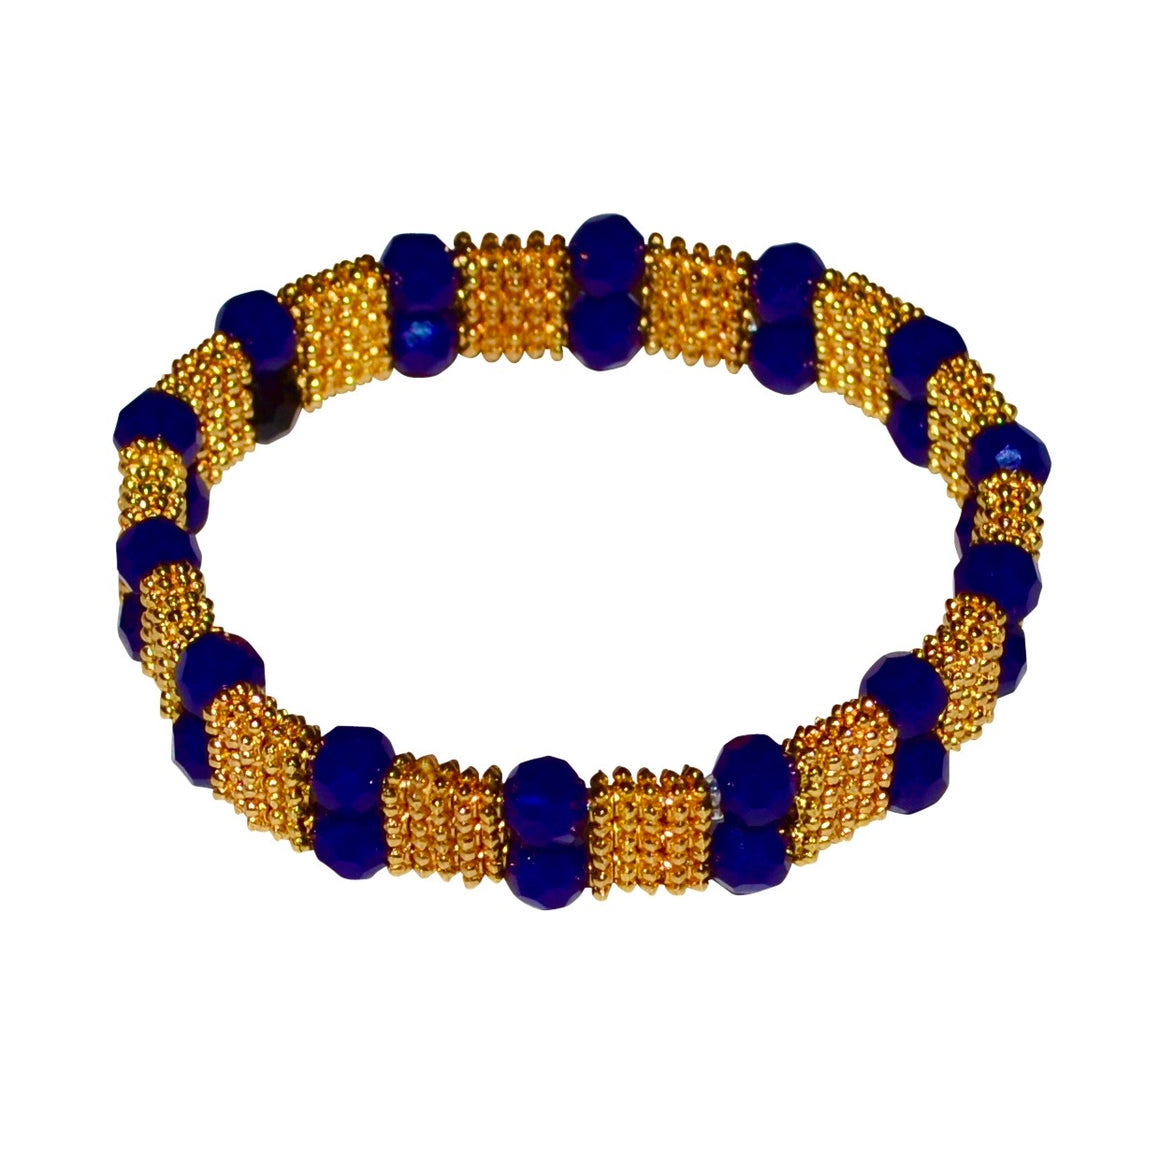 FIONA TEXTURED BRACELET IN GOLD AND DARK COBALT